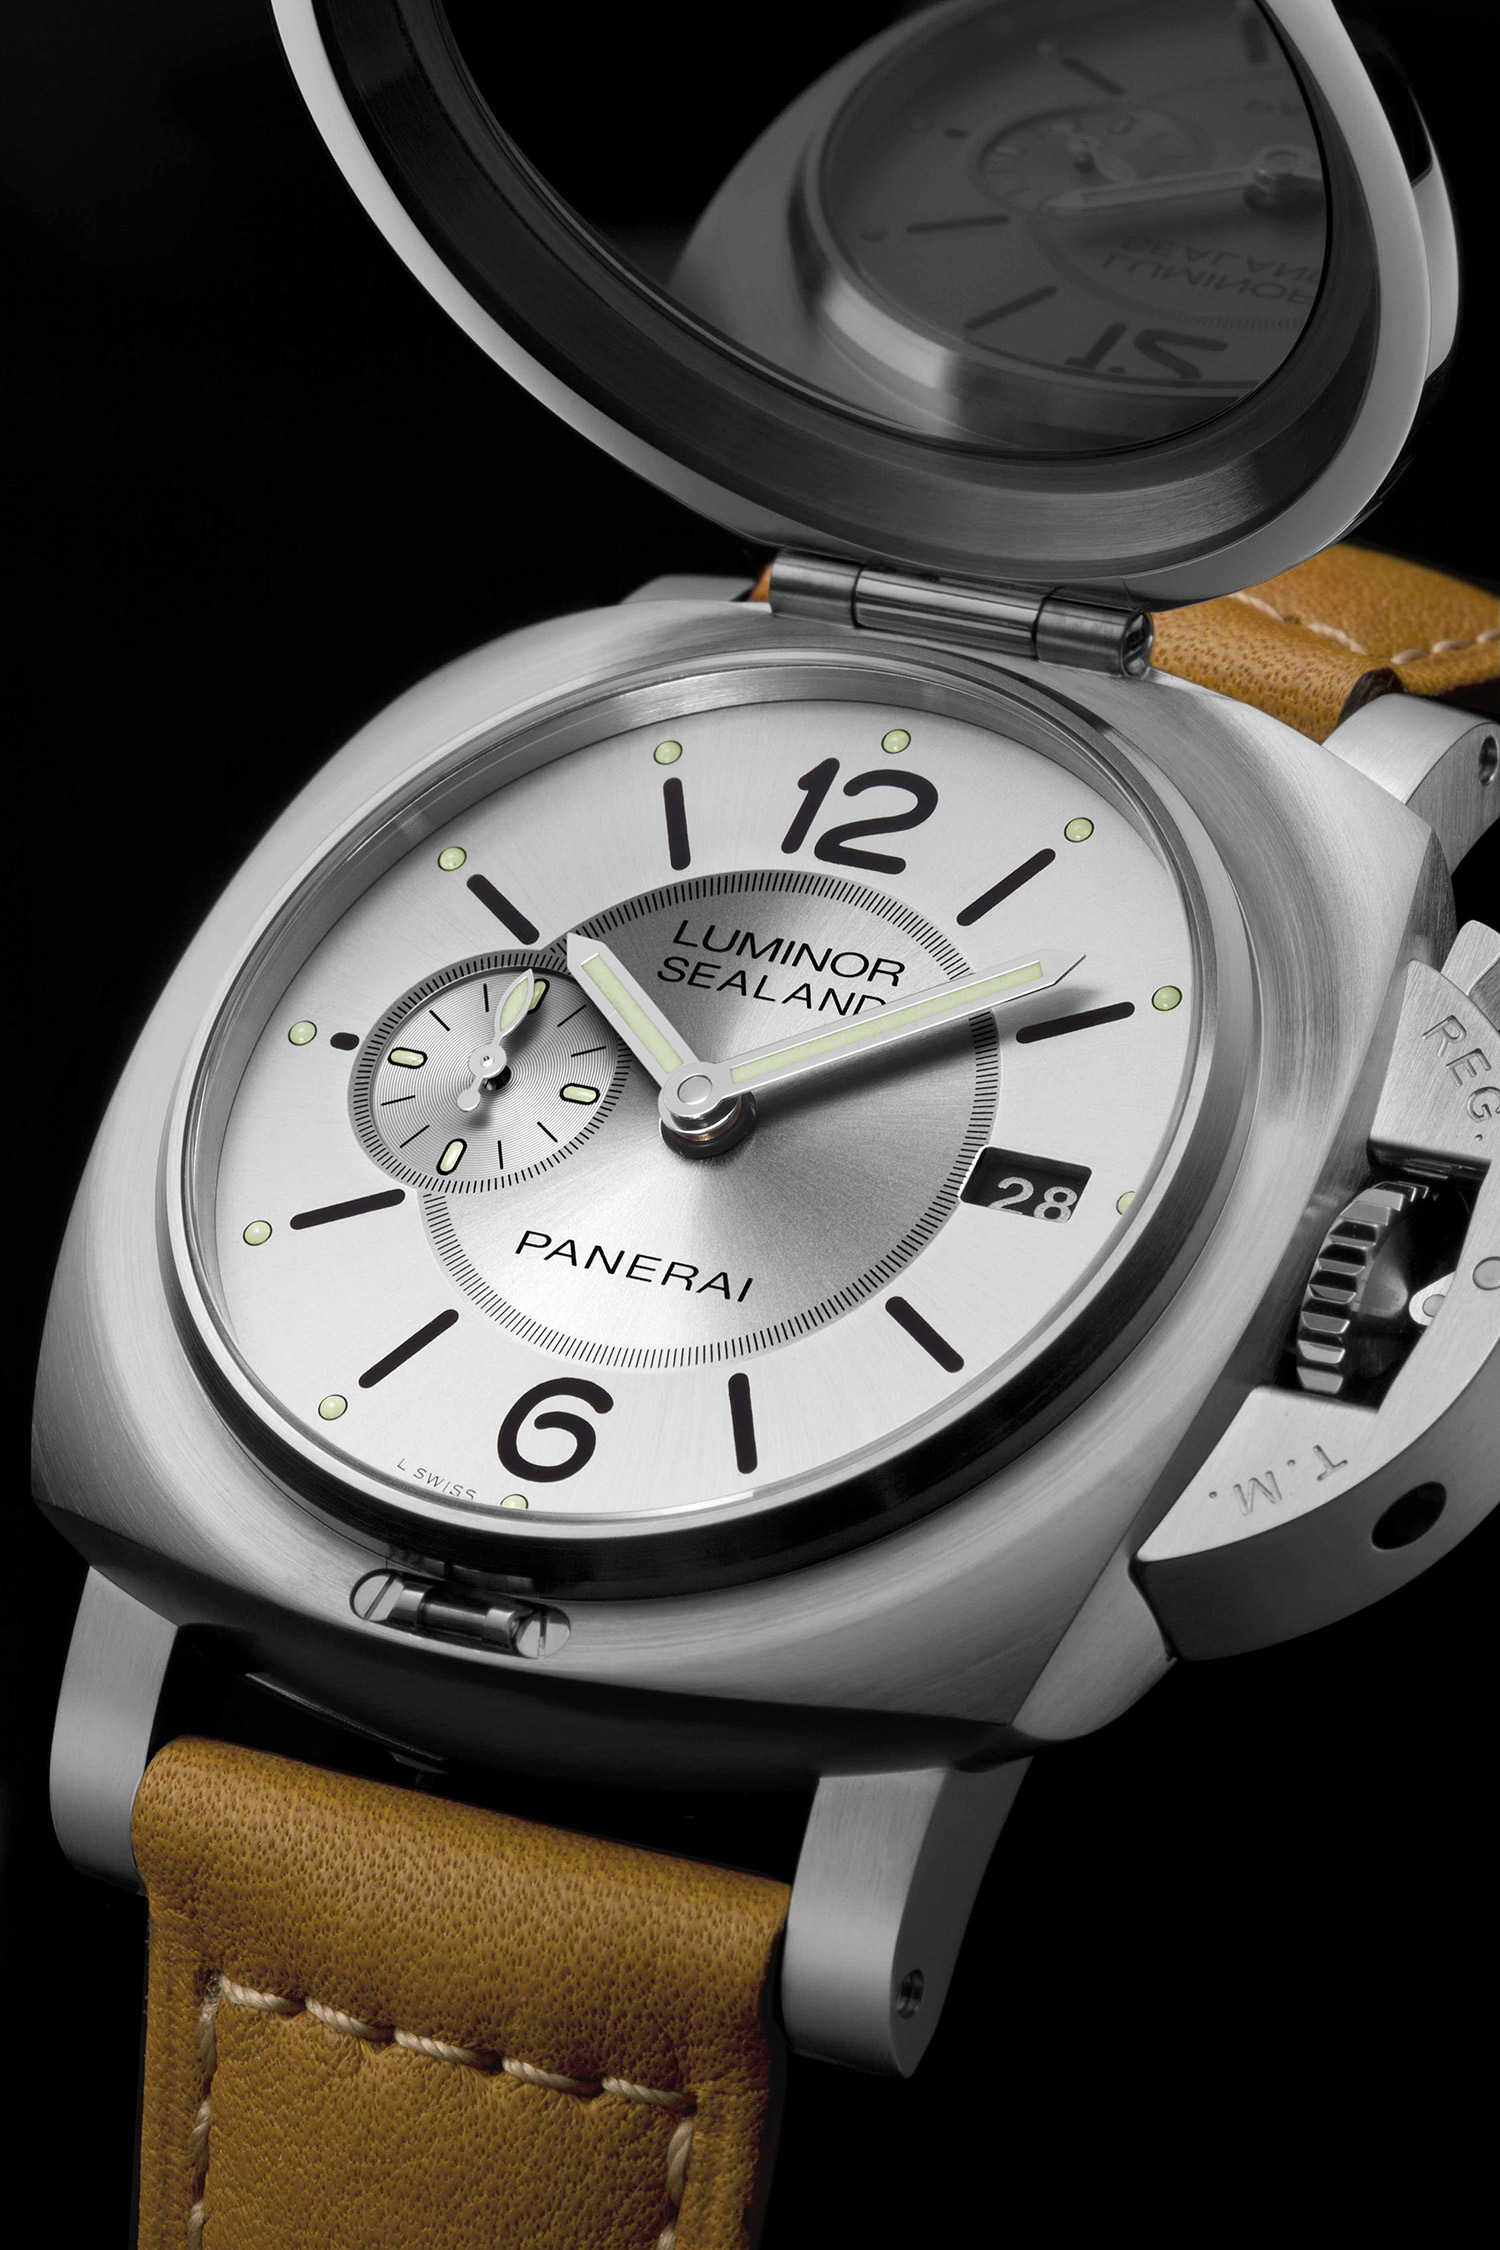 Luminor 1950 Sealand